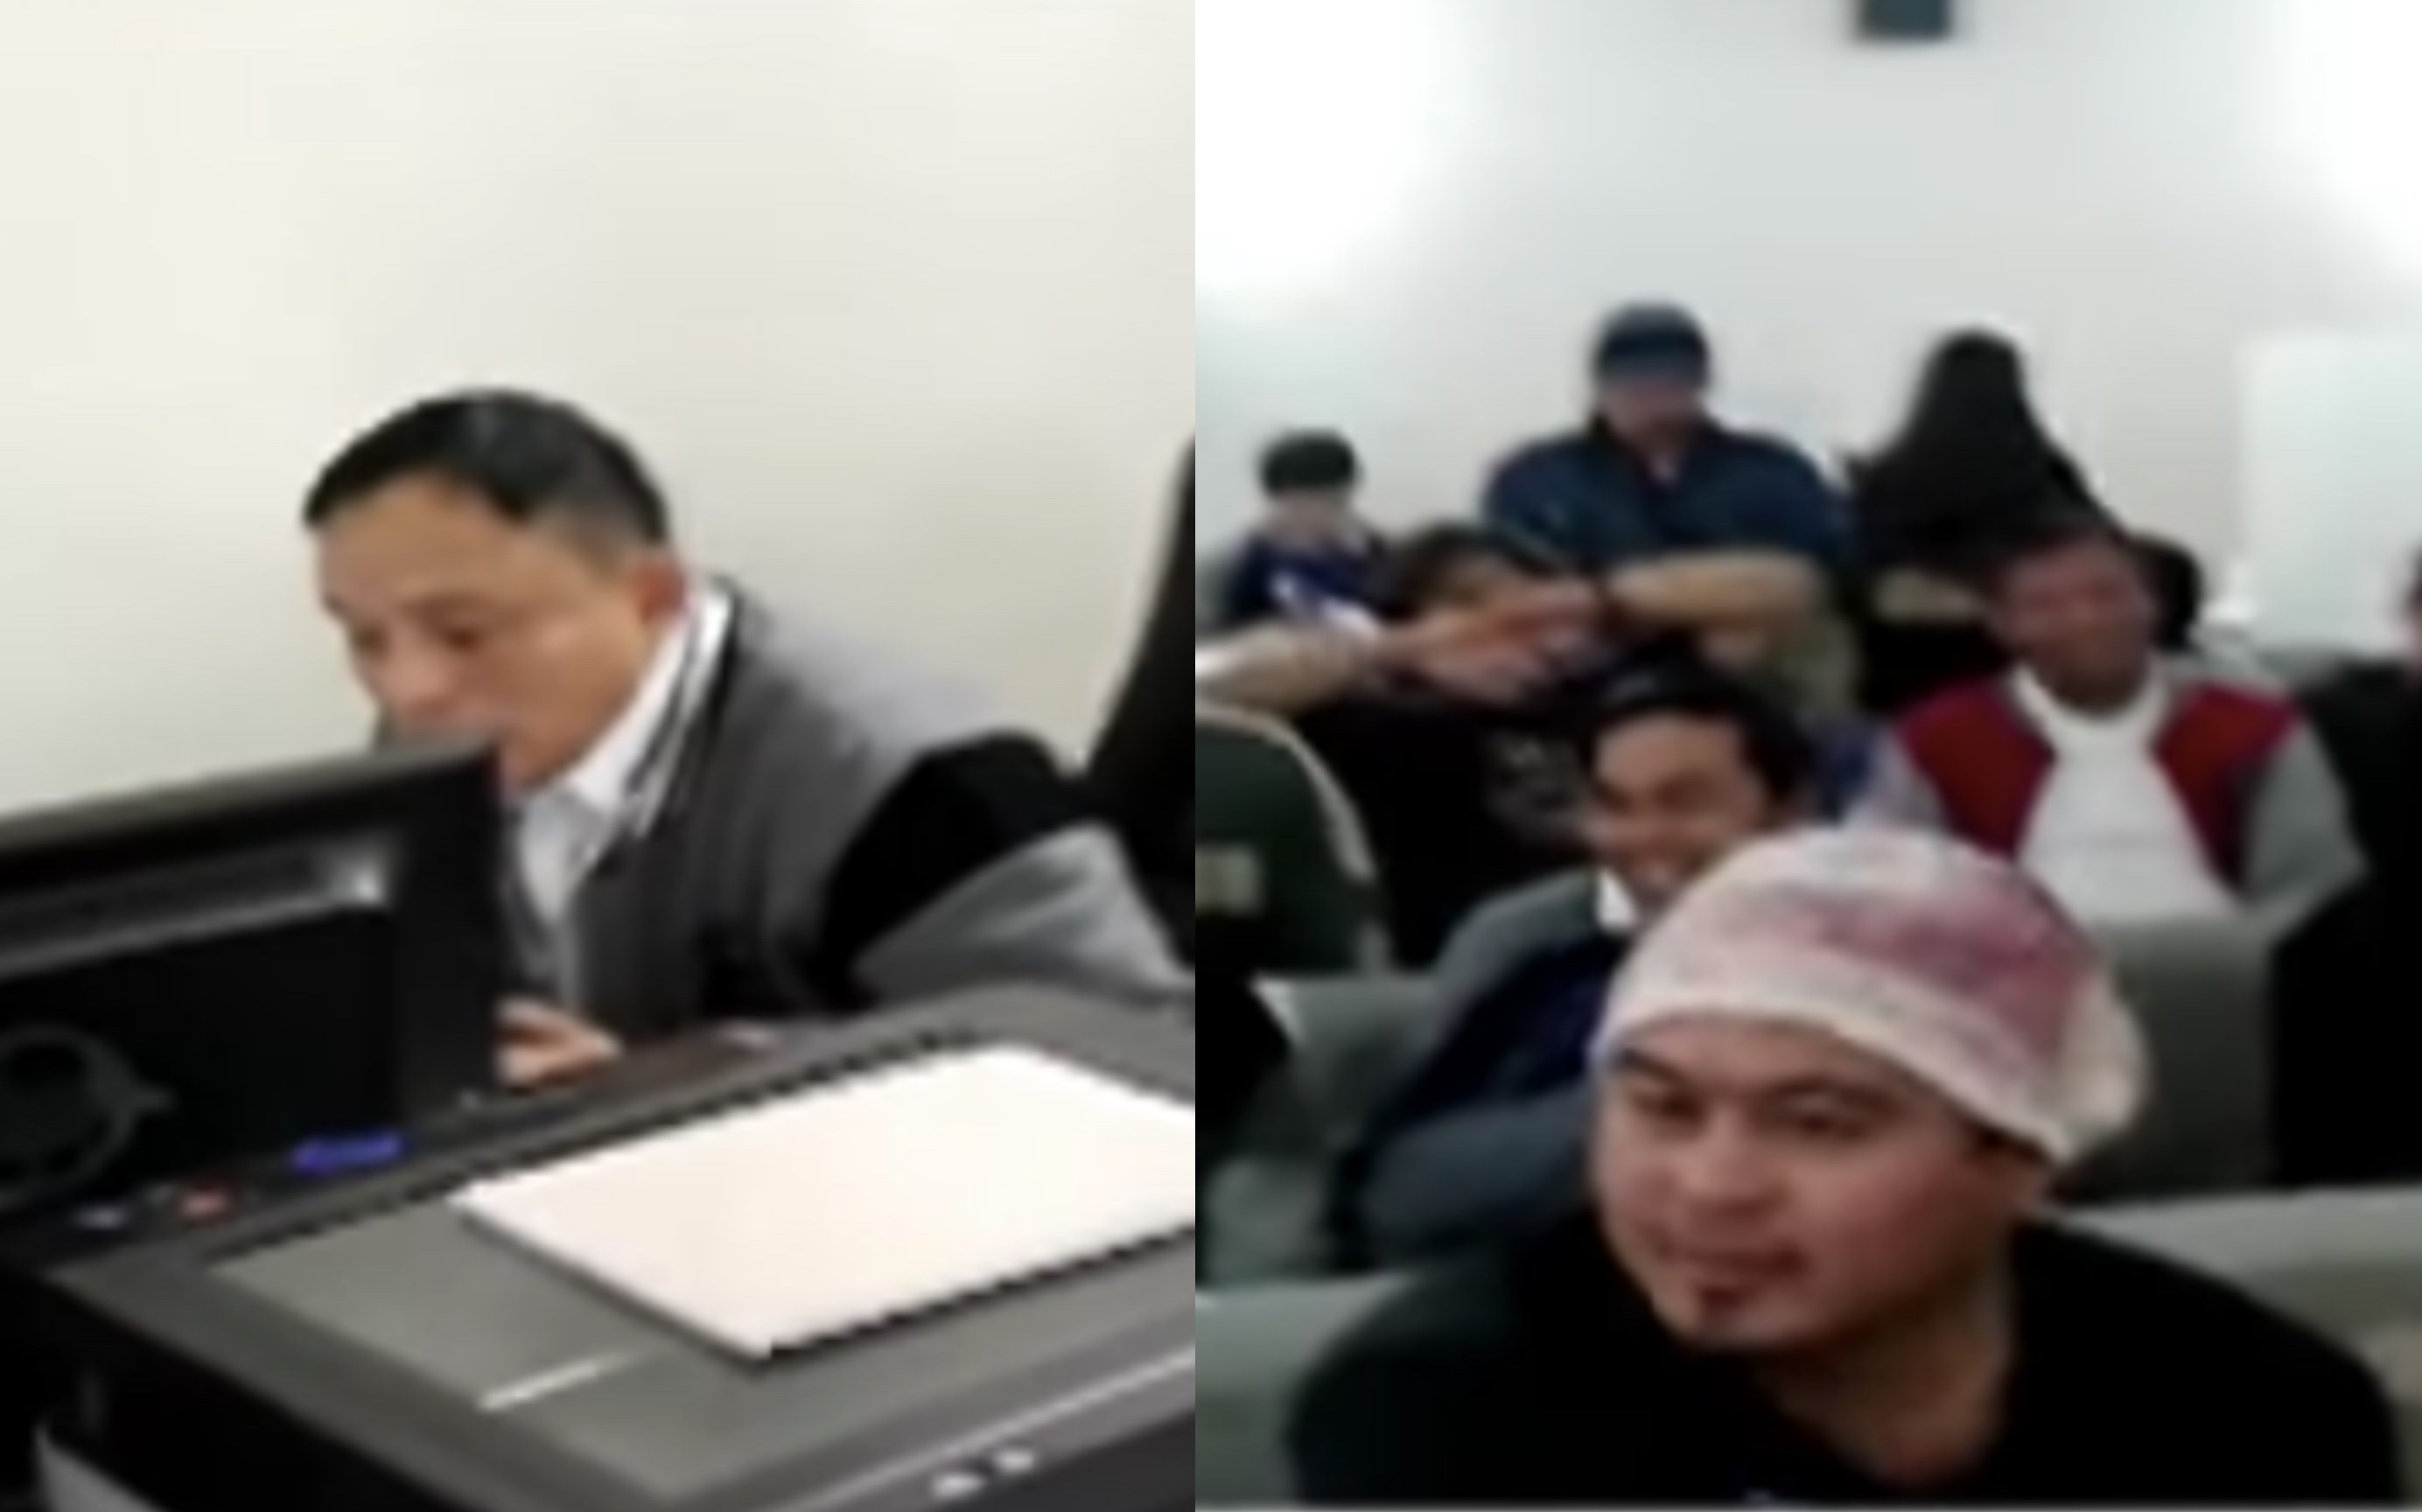 OFWs were not happy with the services of the Philippine Embassy. [Image Credit: Raffy Tulfo in Action]